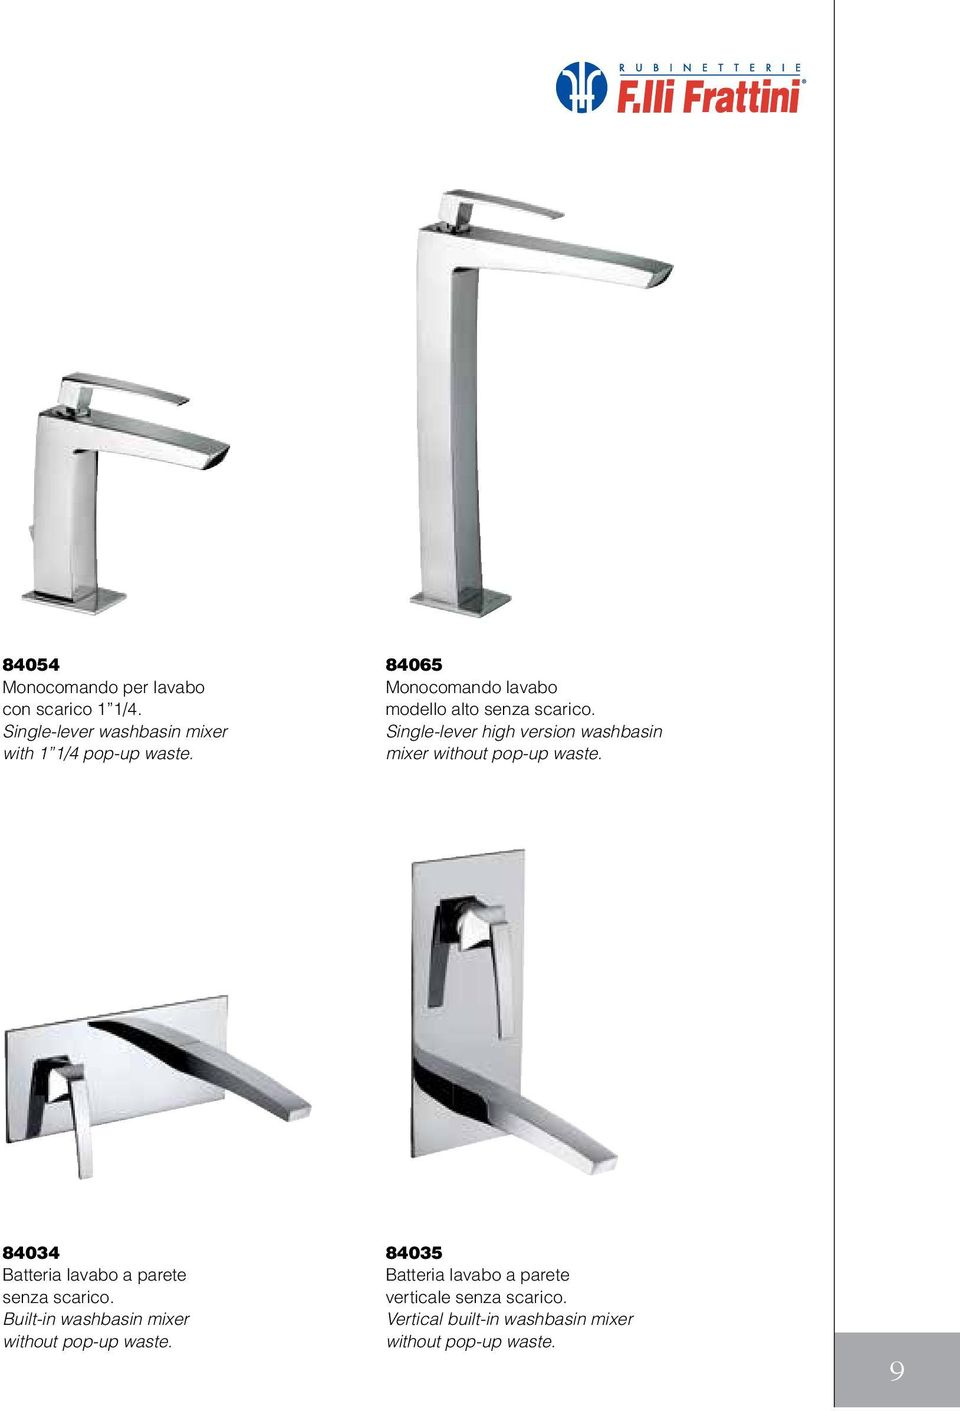 Single-lever high version washbasin mixer without pop-up waste.